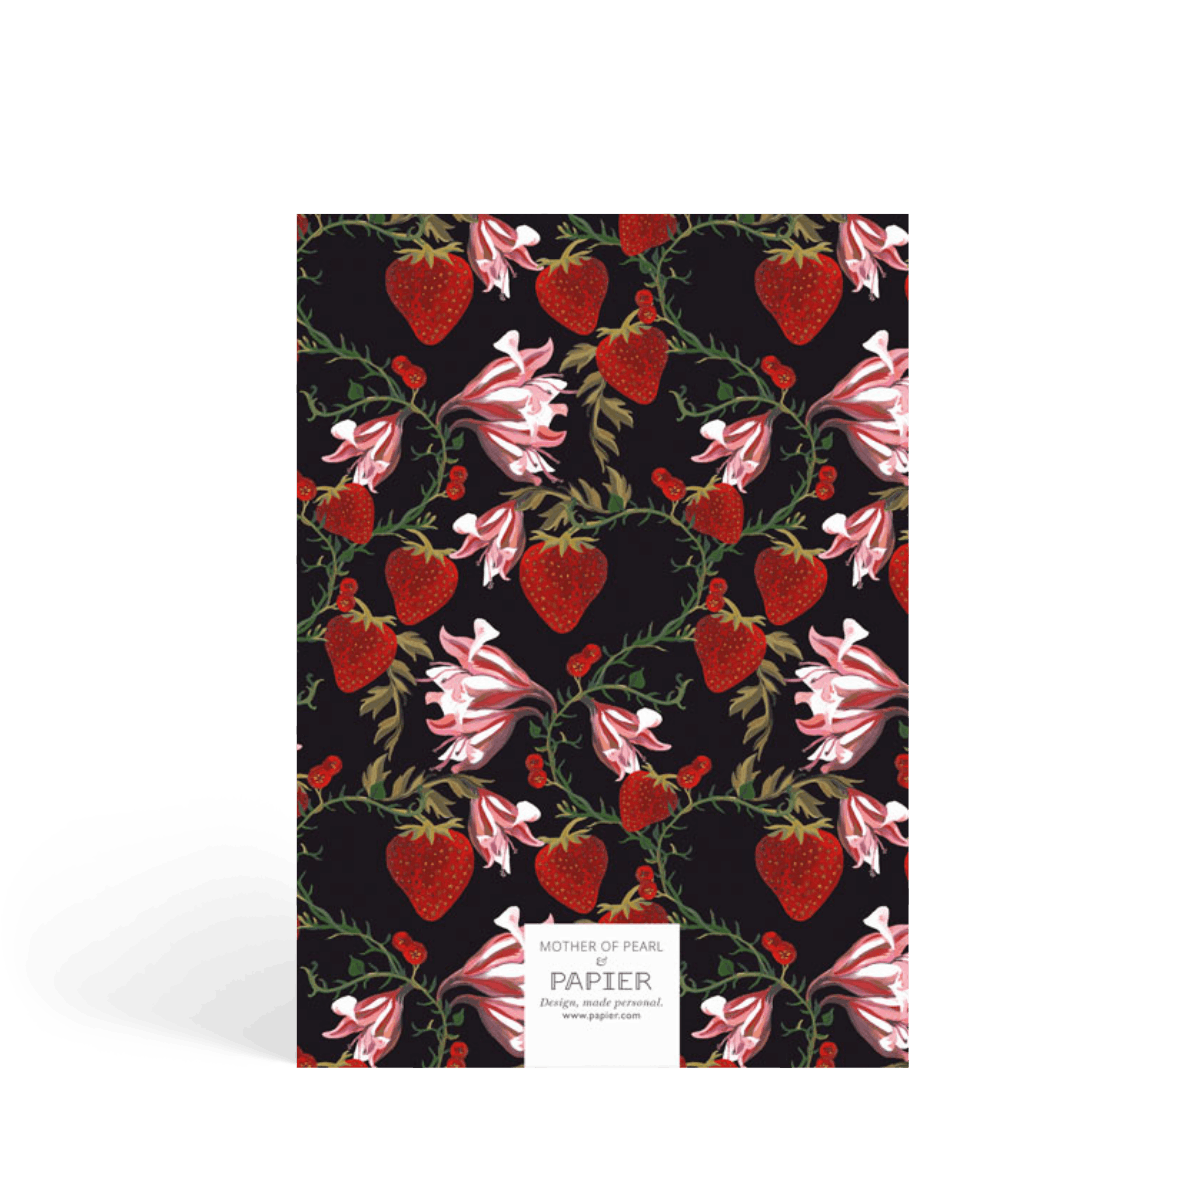 Https%3a%2f%2fwww.papier.com%2fproduct image%2f55578%2f5%2fstrawberry floral 13348 back 1542299595.png?ixlib=rb 1.1